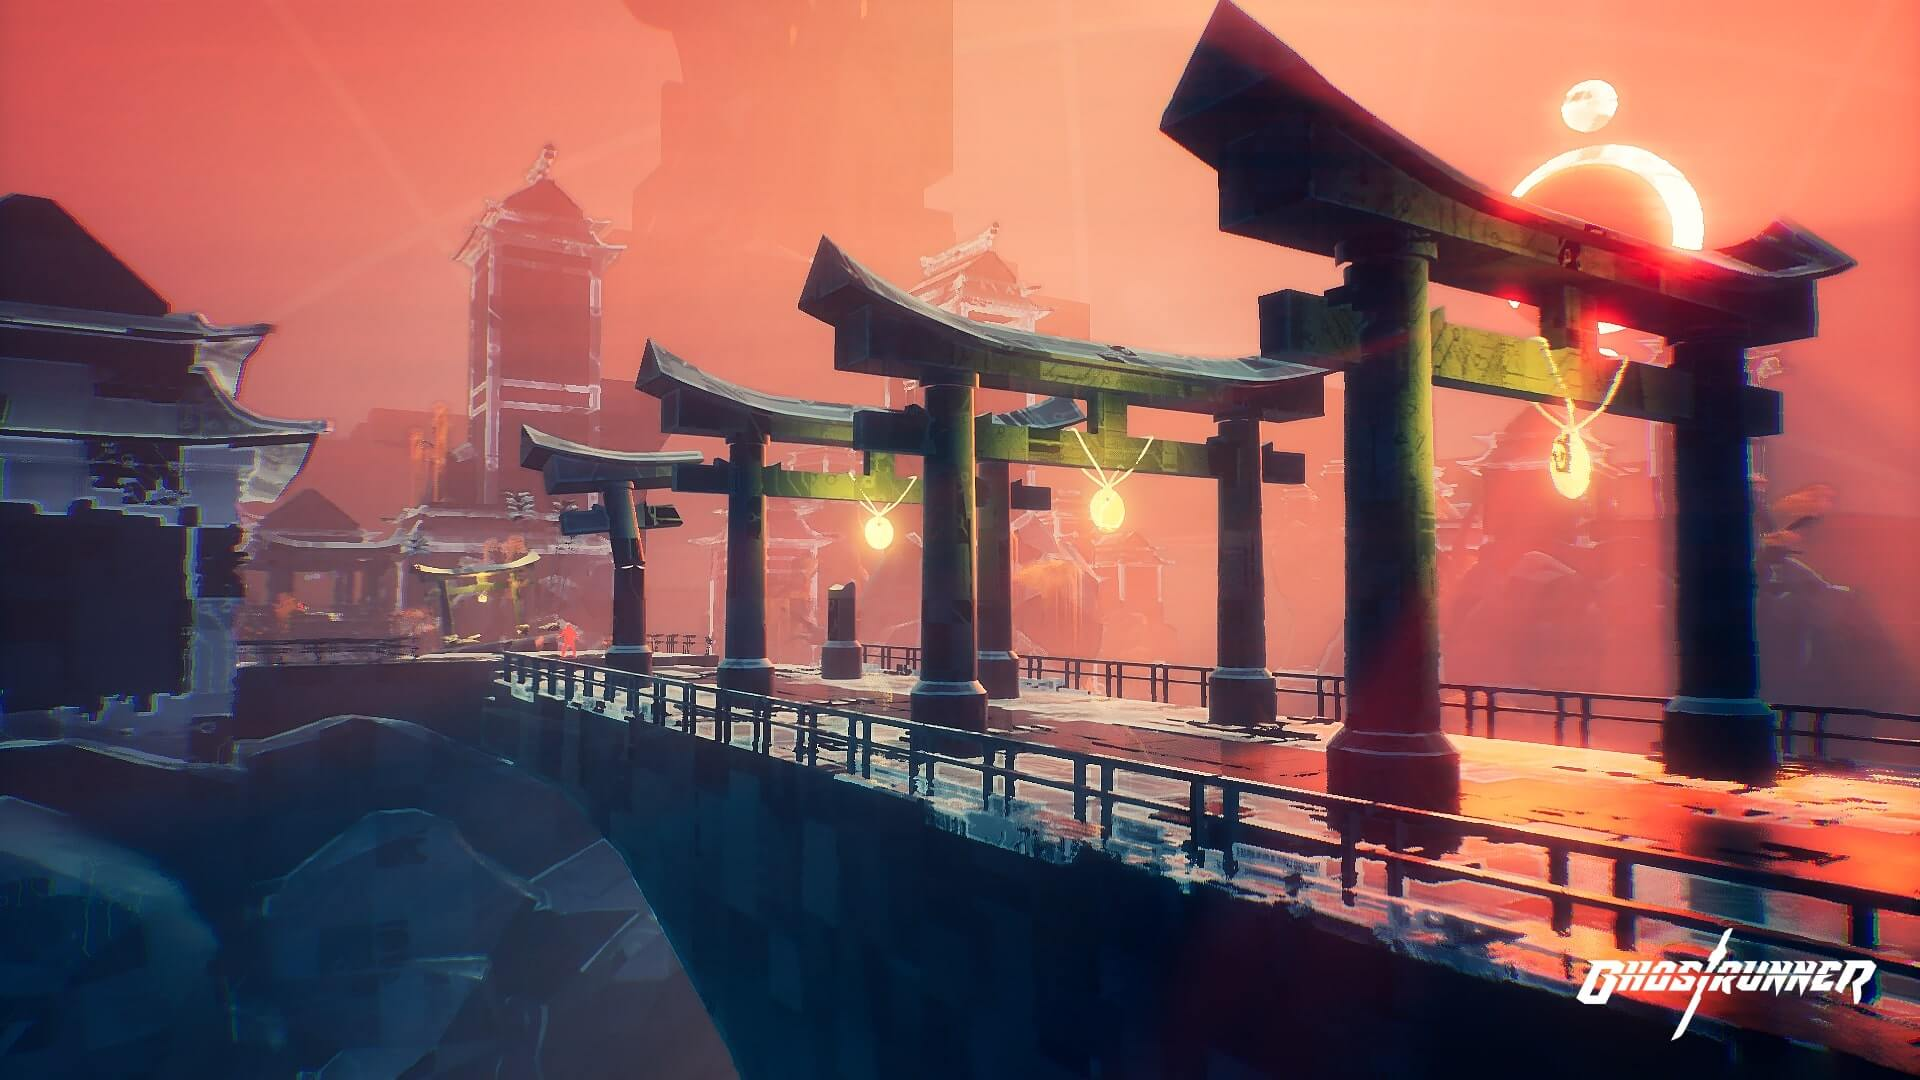 New Trailer For Ghostrunner Shows Off Its Cyberpunk World And Combat